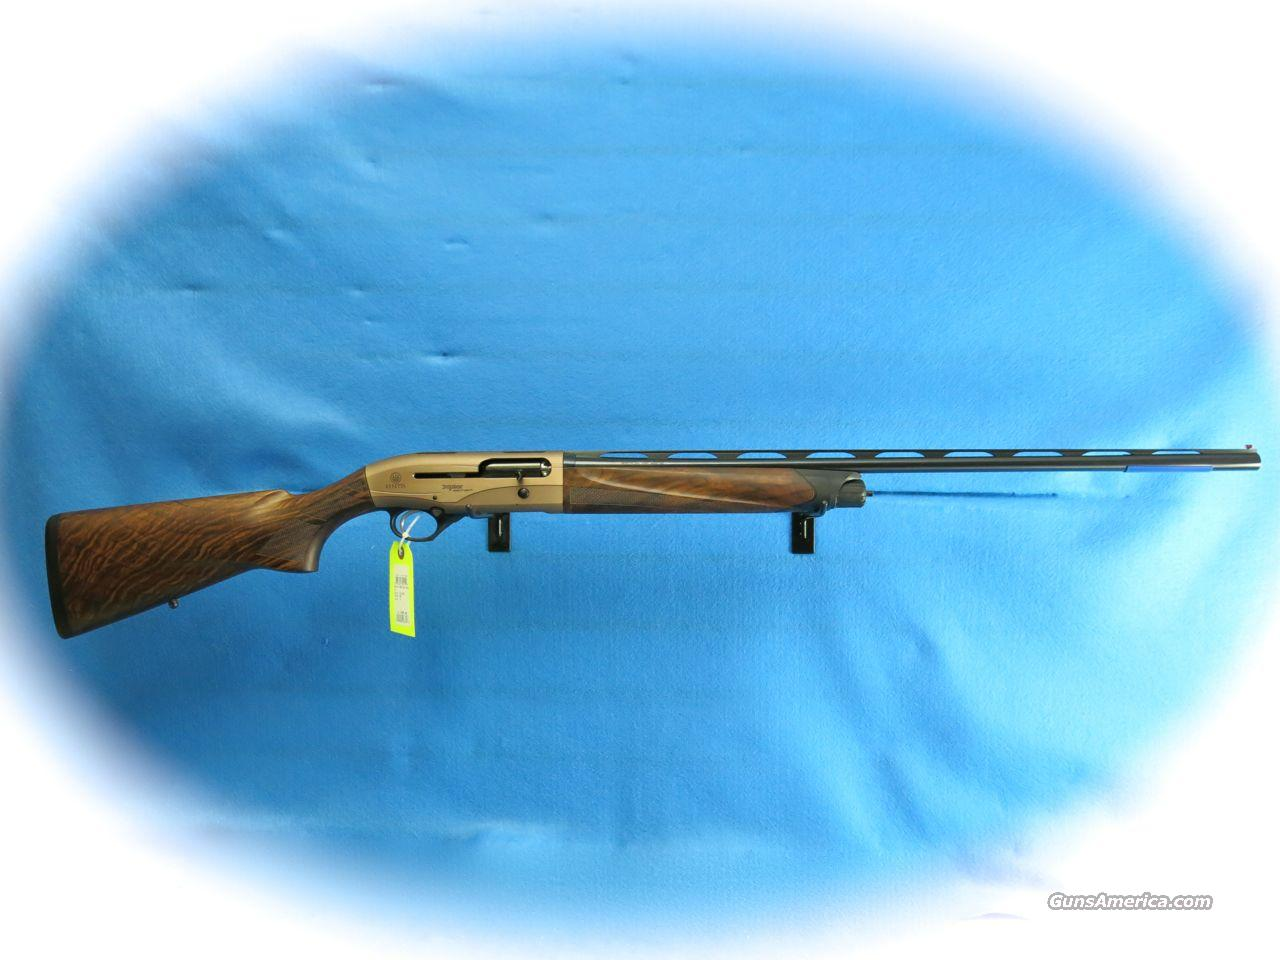 Beretta A400 Xplor Action  28 Ga. Semi Auto Shotgun **New**  Guns > Shotguns > Beretta Shotguns > Autoloaders > Hunting